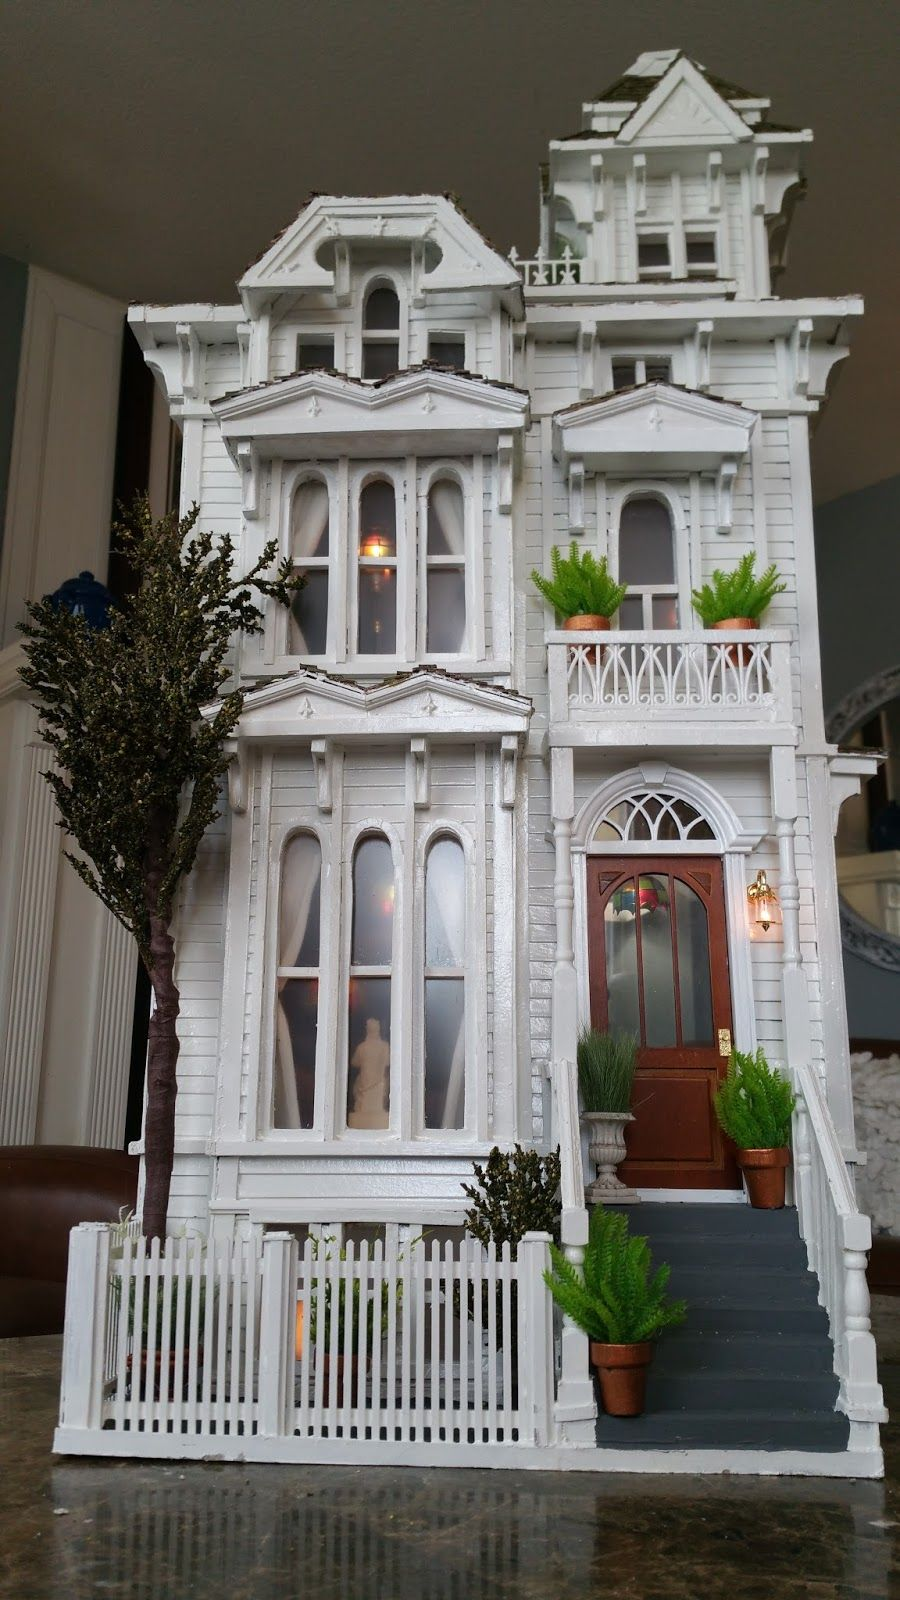 San Francisco Victorian dollhouse                                                                                                                                                                                 More                                                                                                                                                                                 More #dollhouses